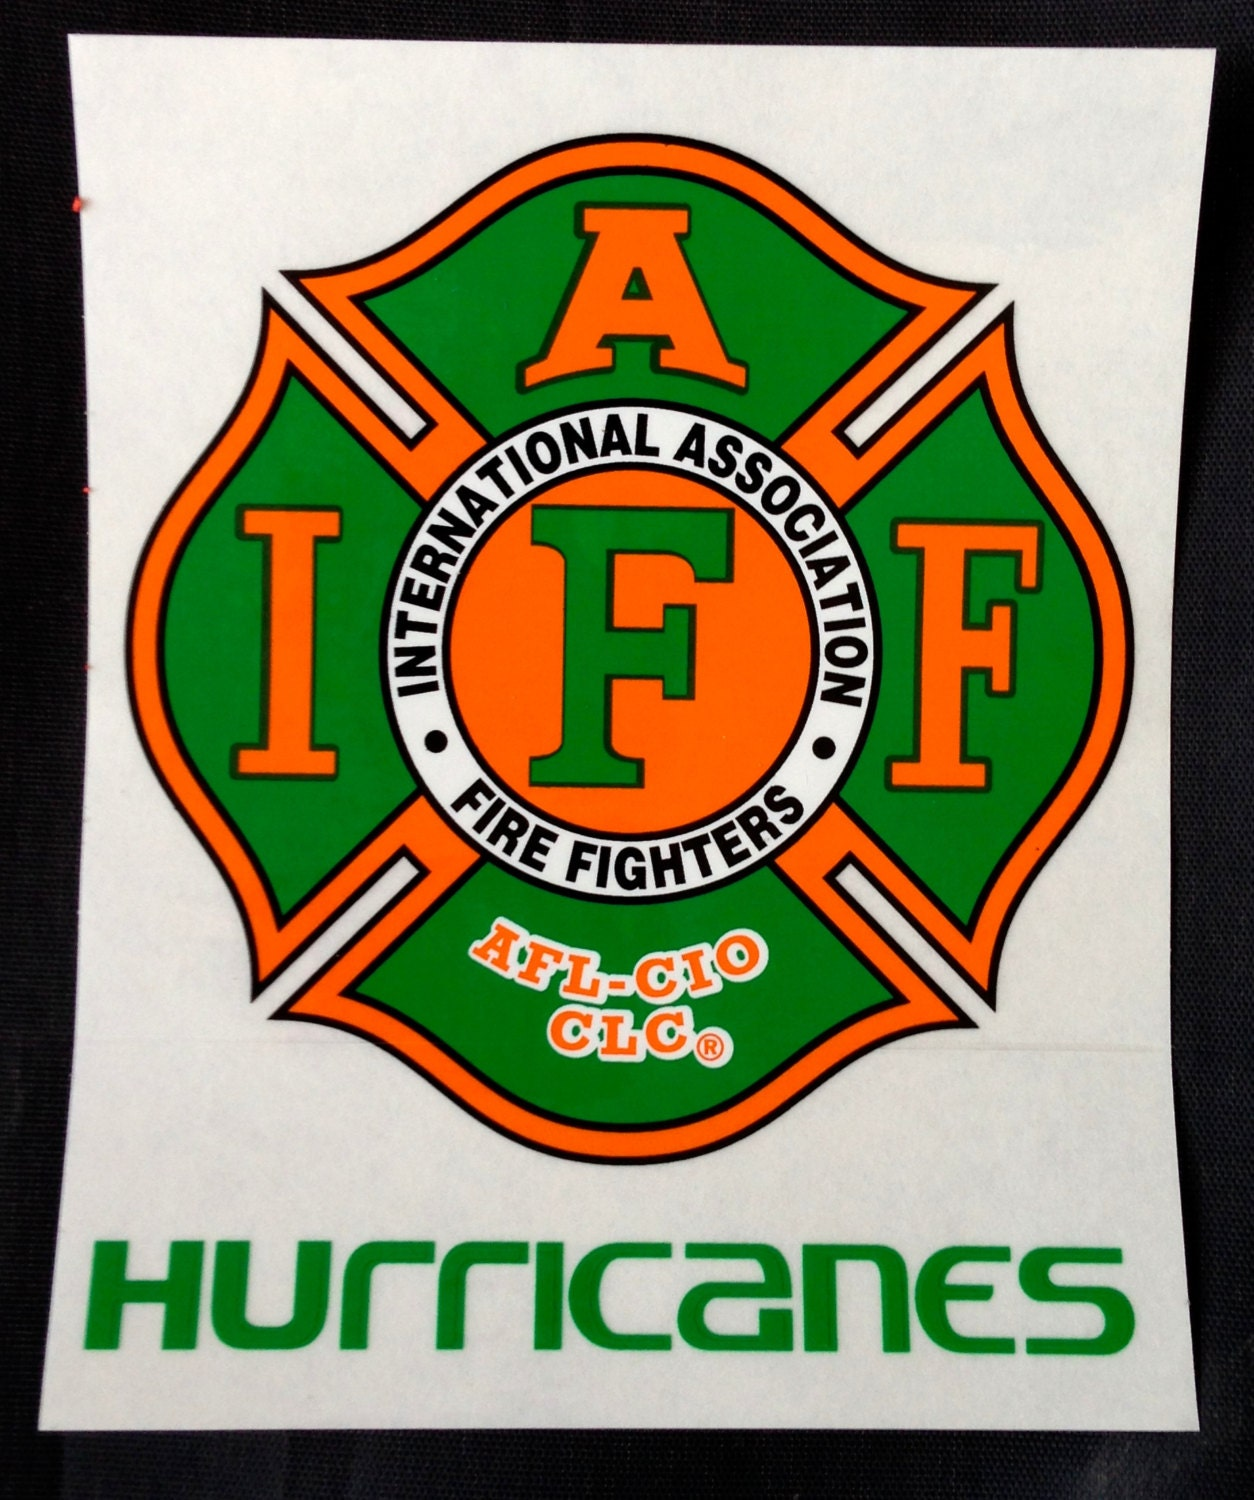 IAFF Miami Hurricanes Car Decal for Union Firefighters Free